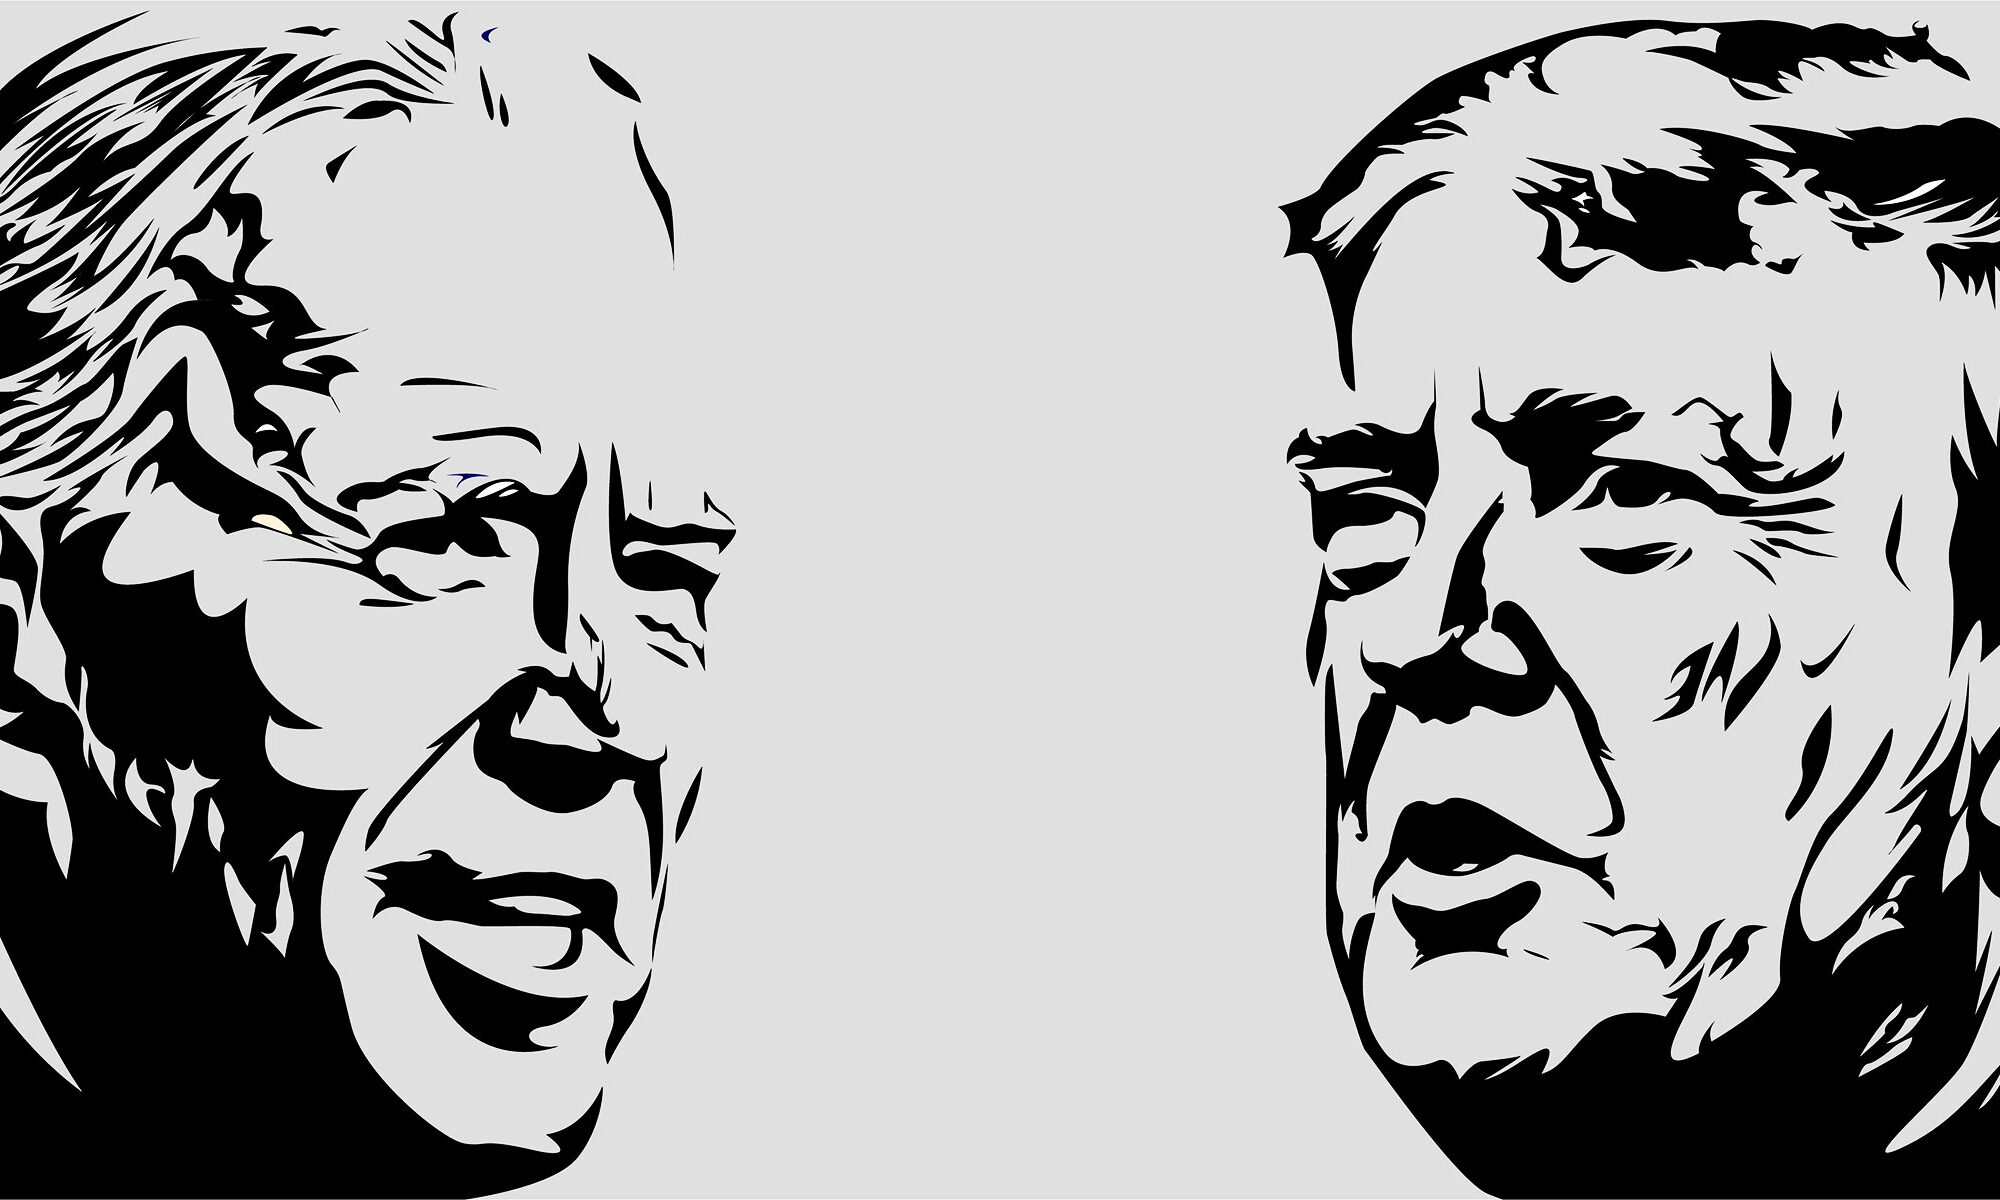 John Feffer, Foreign Policy in Focus, Biden administration news, Trump administration policies, Joe Biden news, Donald Trump legacy, Trump-era policies, US Afghanistan withdrawal, Trump Biden transition